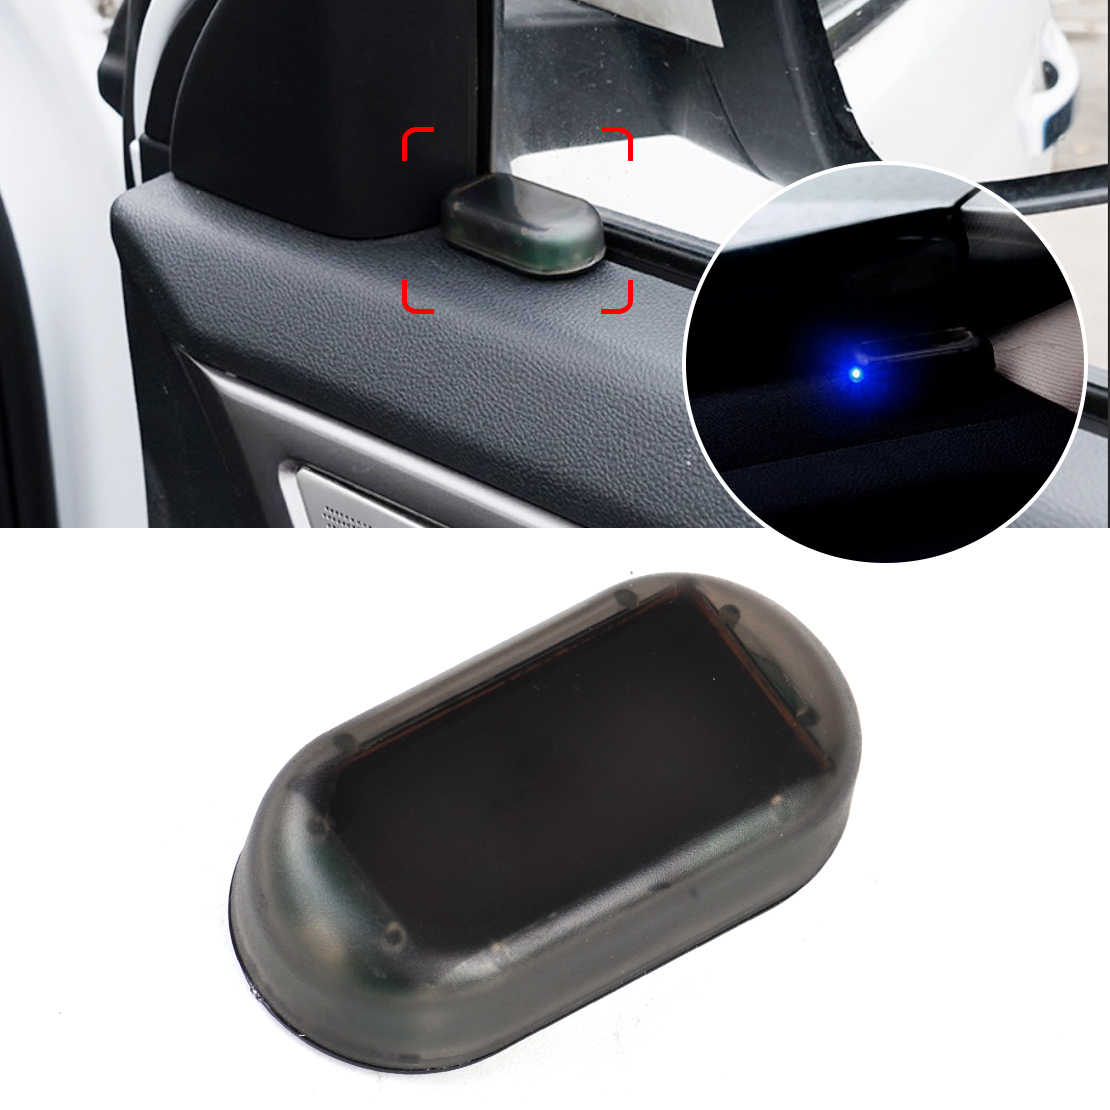 DWCX Car Blue LED Solar Power Simulated Fake Dummy Alarm Warning Security  Anti-Theft Flashing Light for VW Audi BMW Peugeot Kia